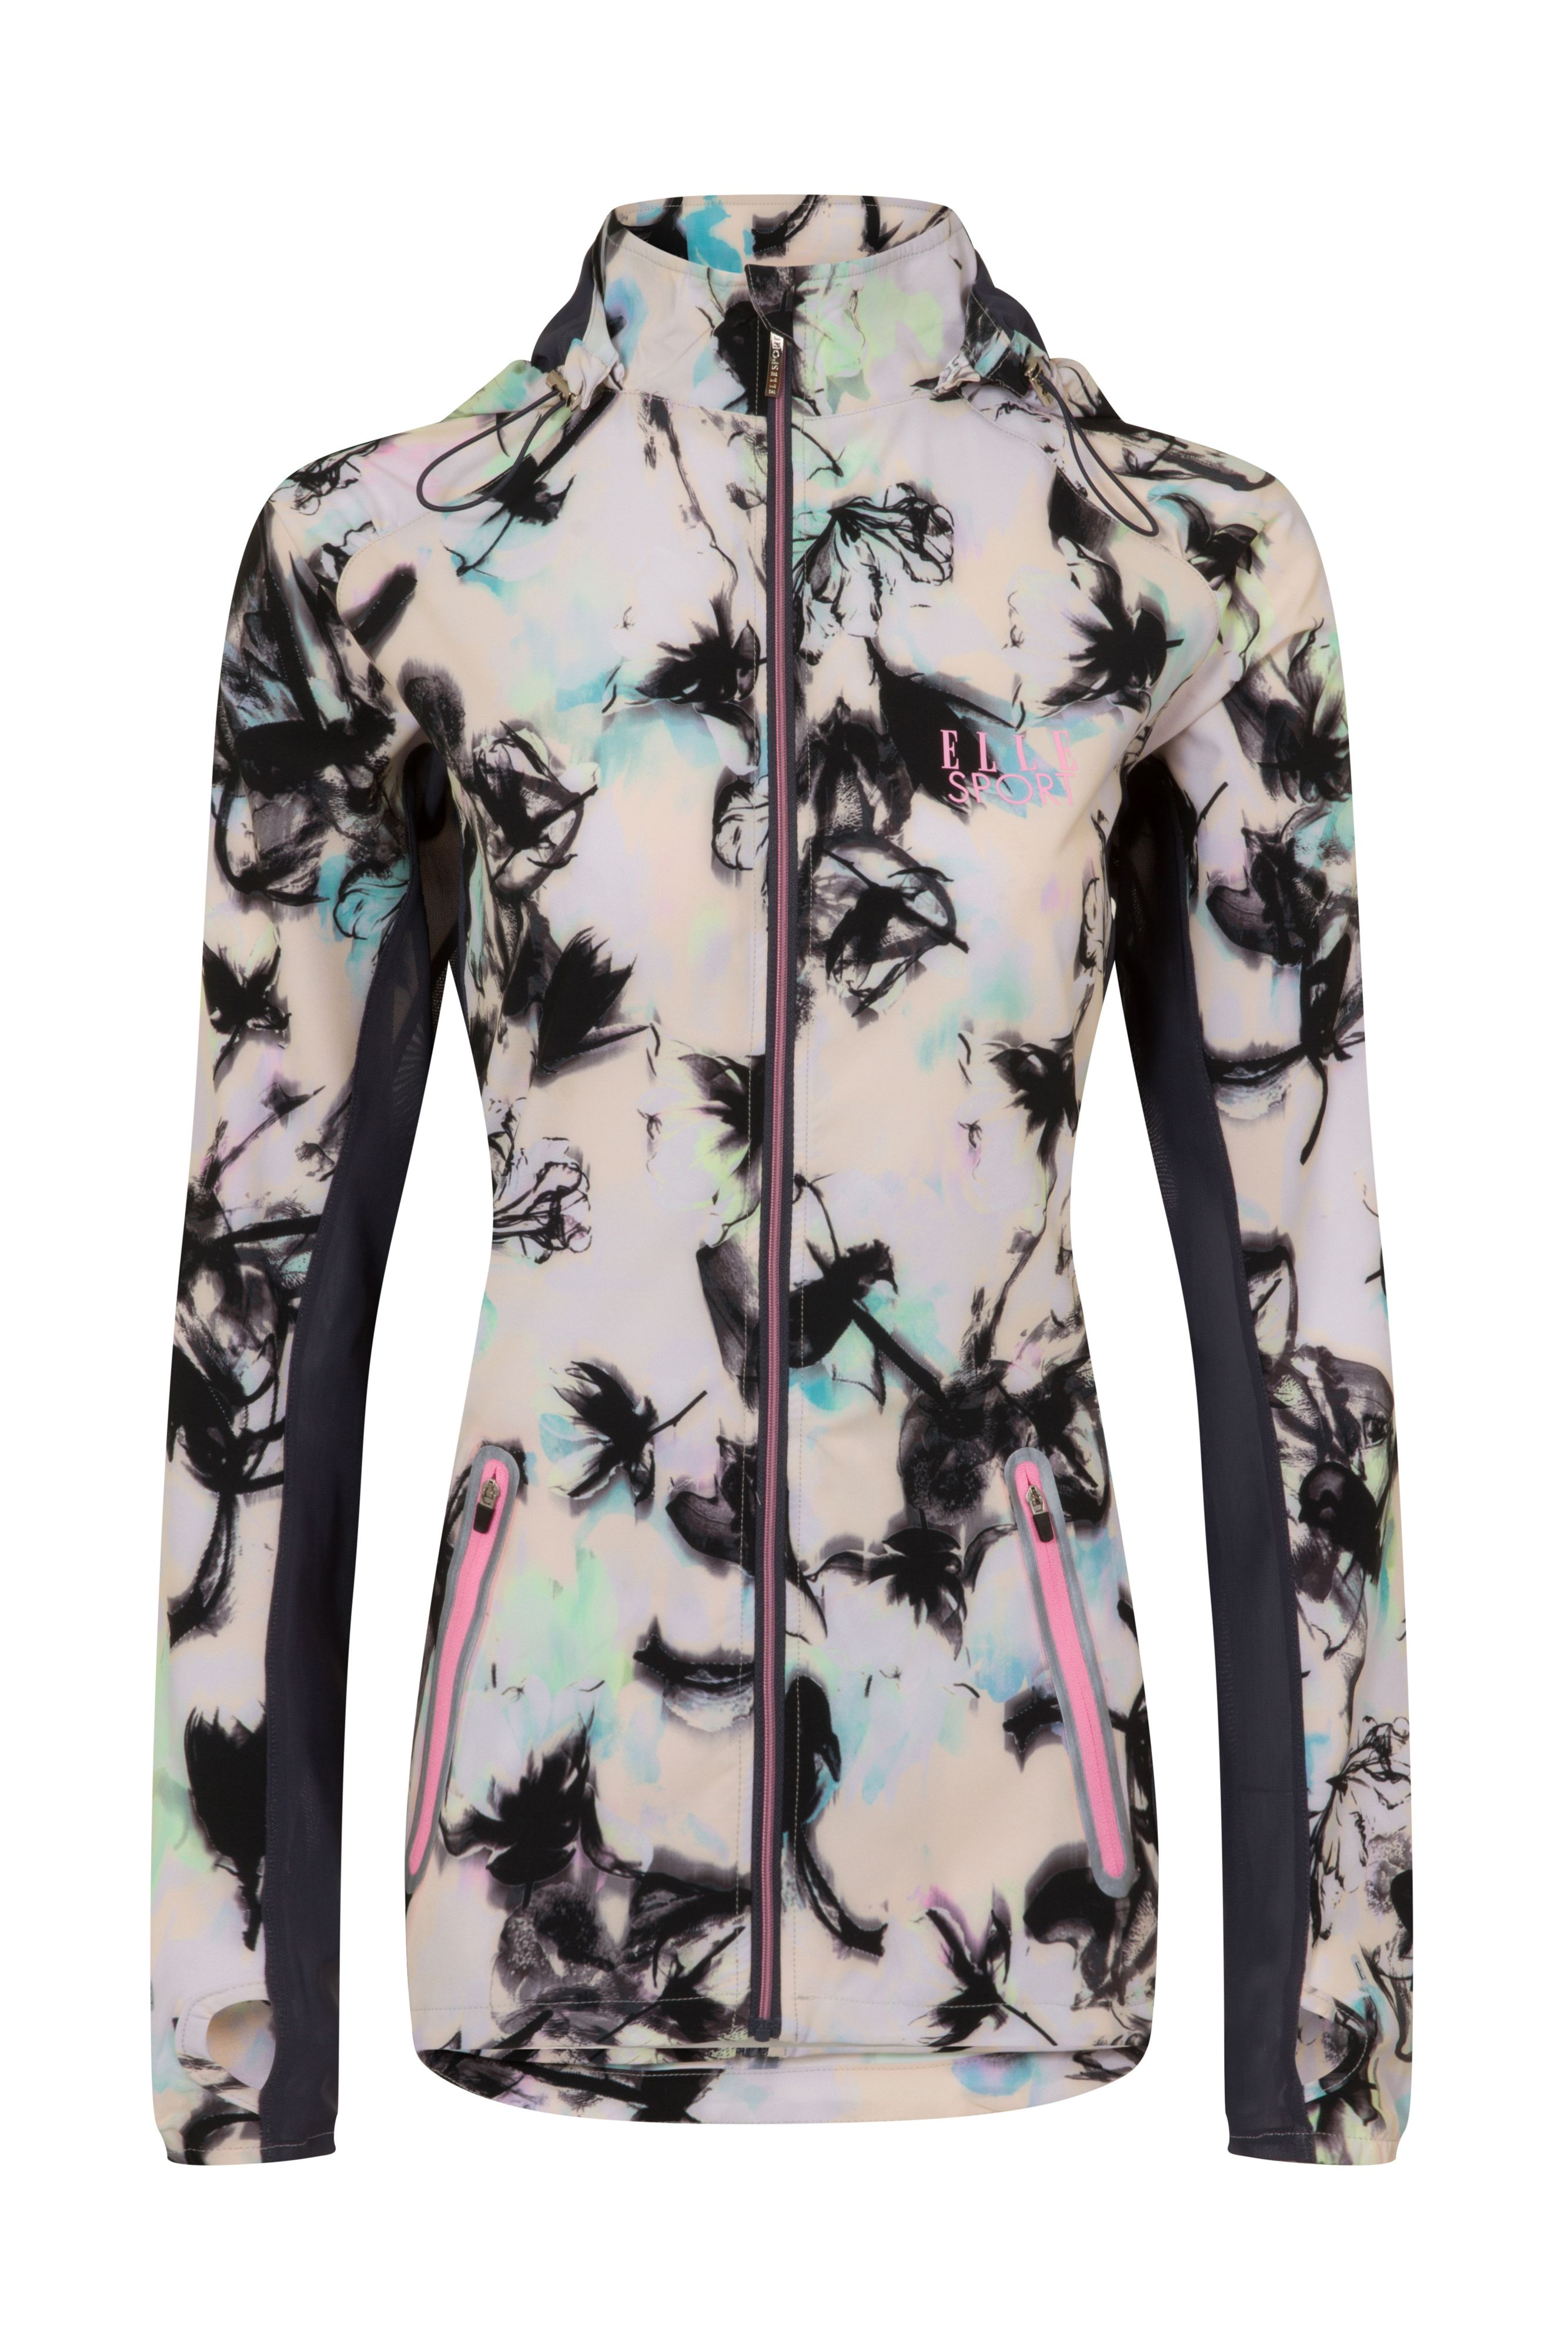 Elle Sport Printed Lightweight Jacket With Mesh Detail, Multi-Coloured